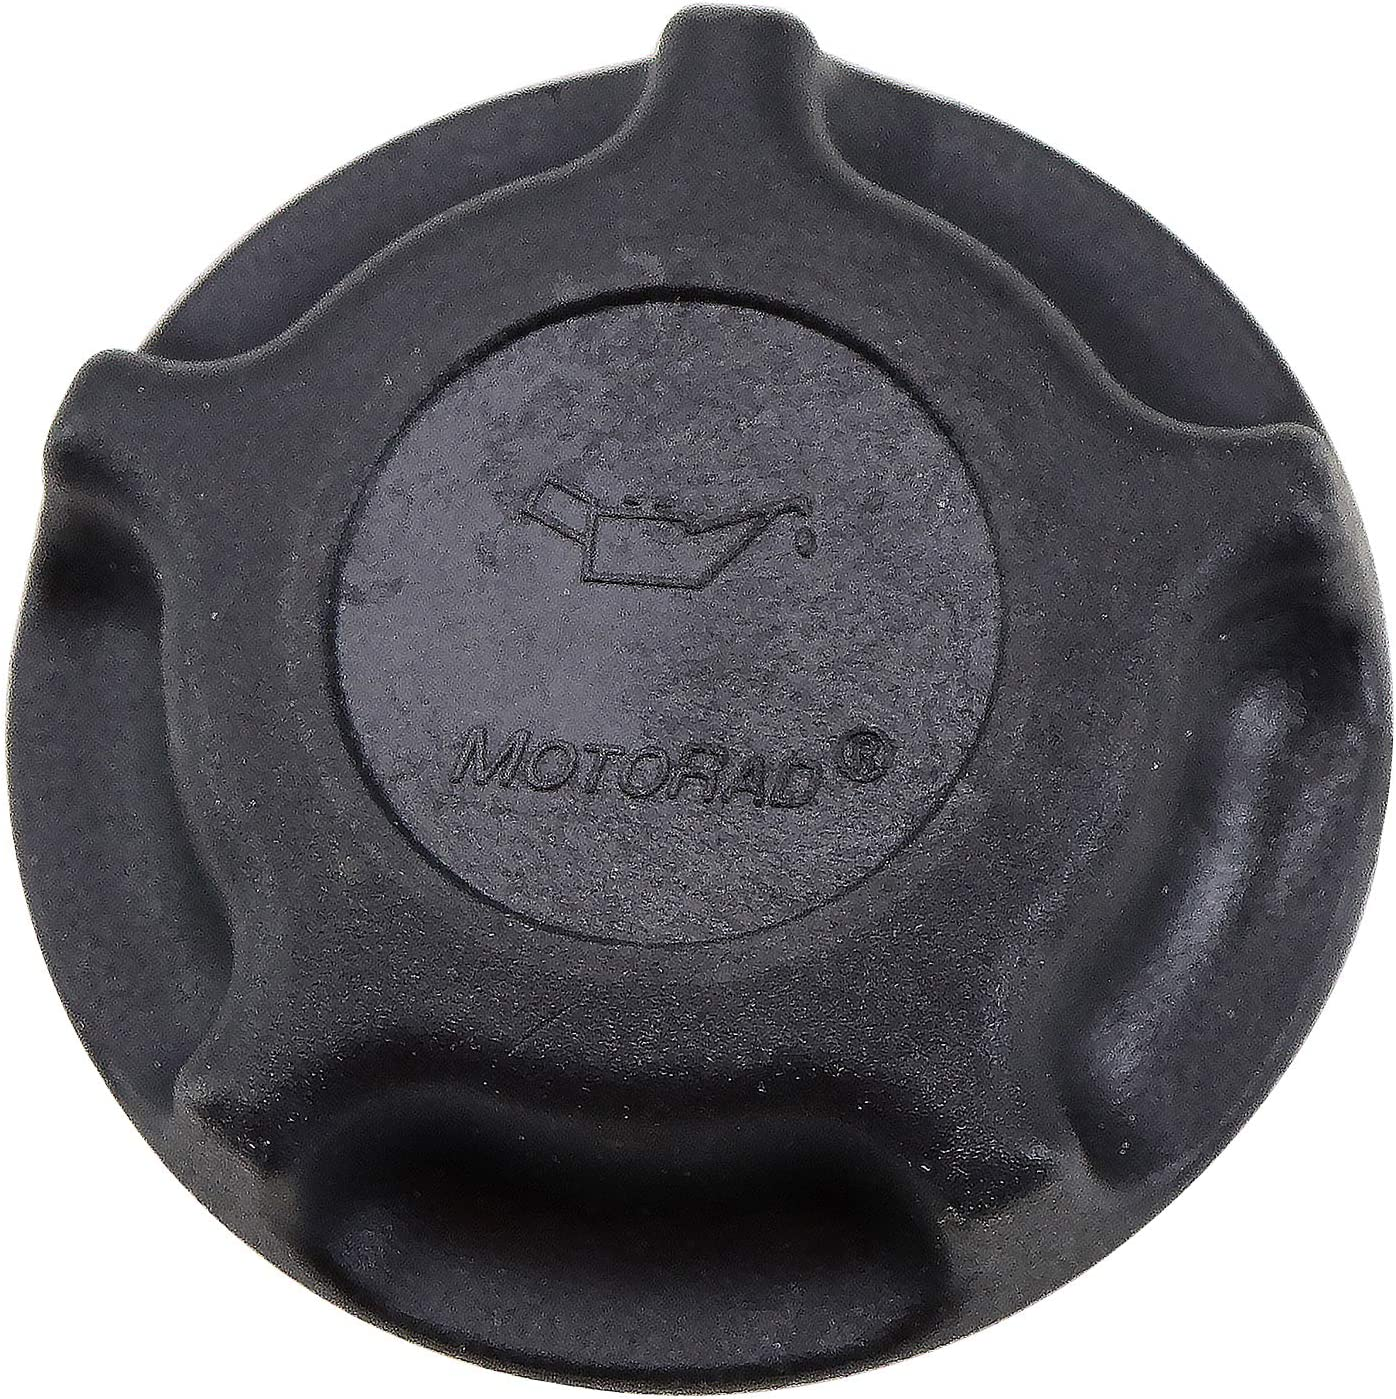 Beck Arnley 016-0142 Oil Filler Cap